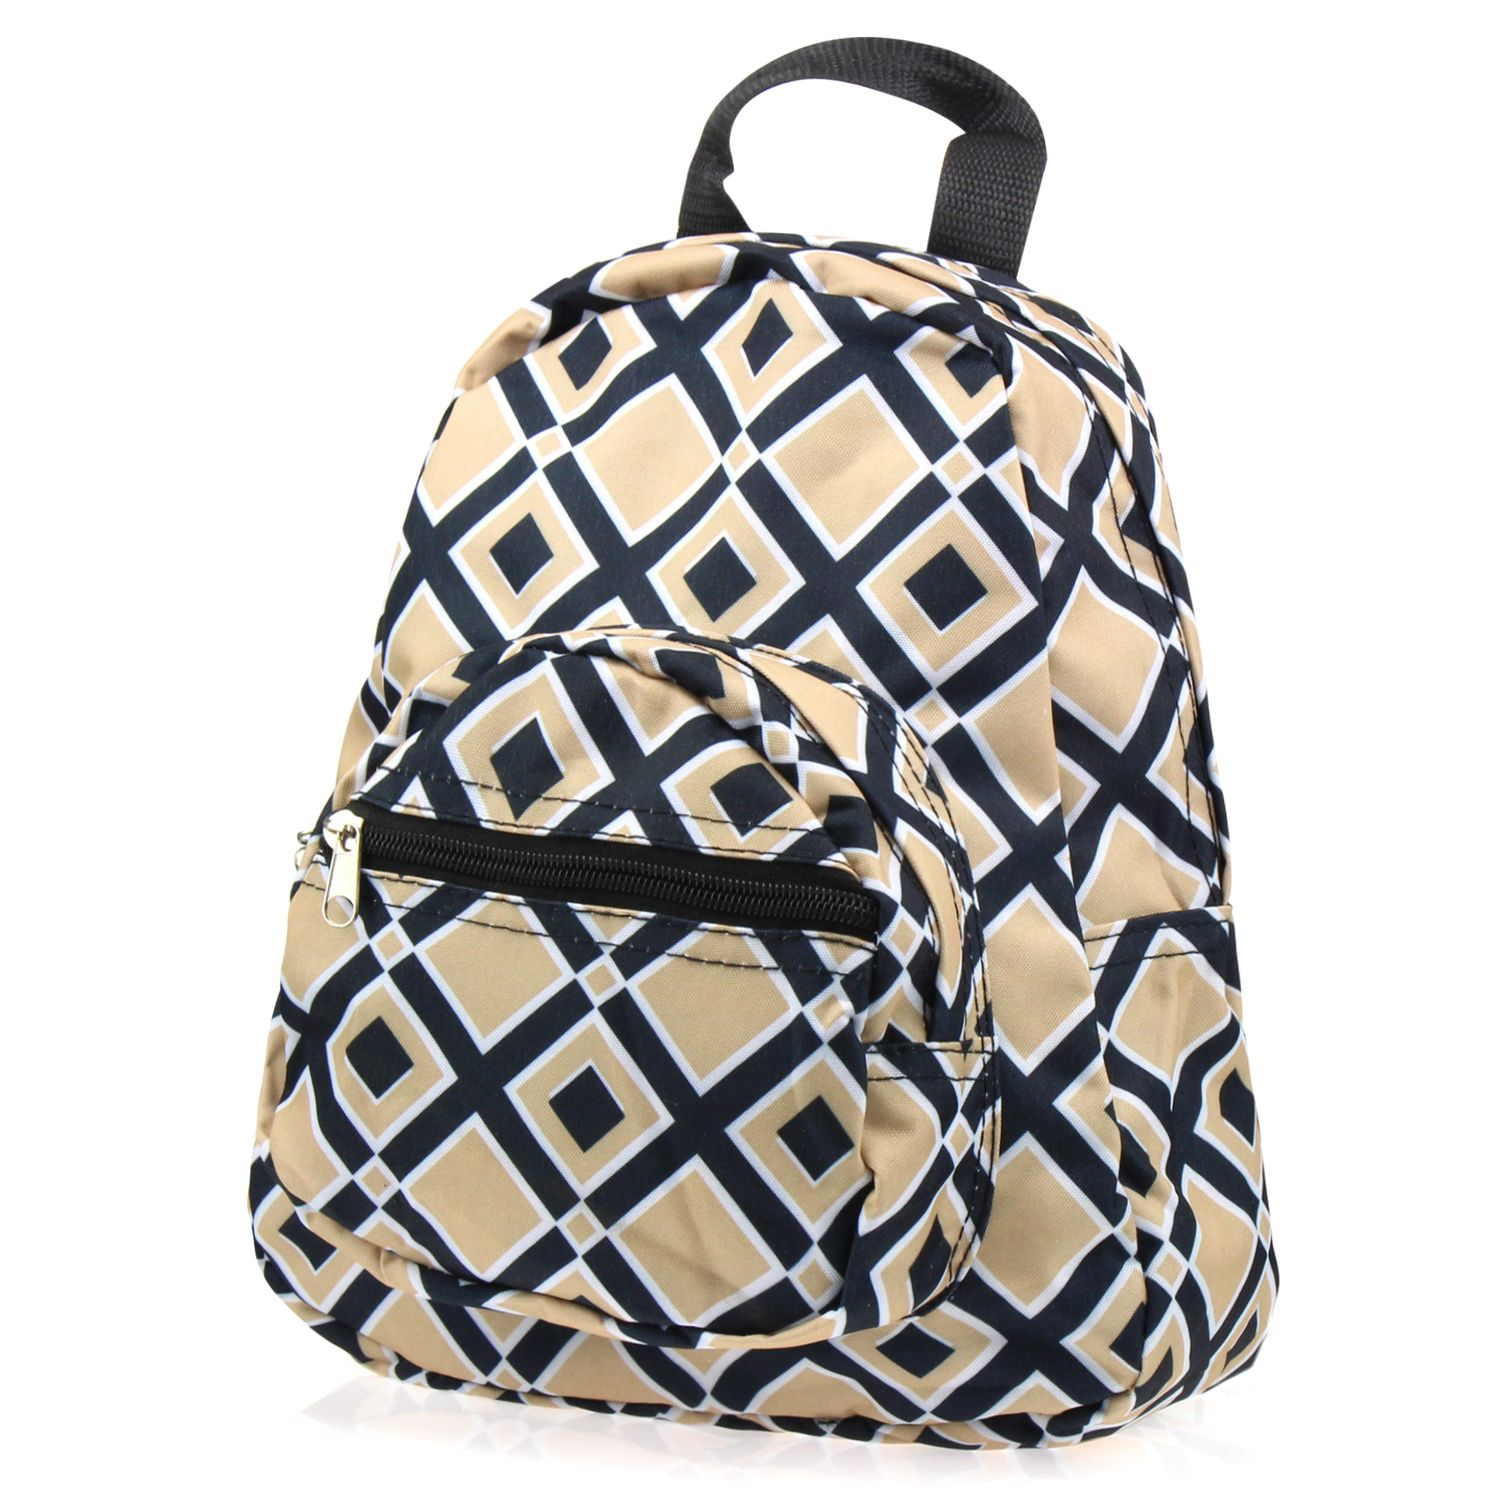 Stylish Kids Small Travel Backpack by Zodaca Girls Boys Schoolbag Children's Bookbag Lunch Bag - Khaki/Black Times Square